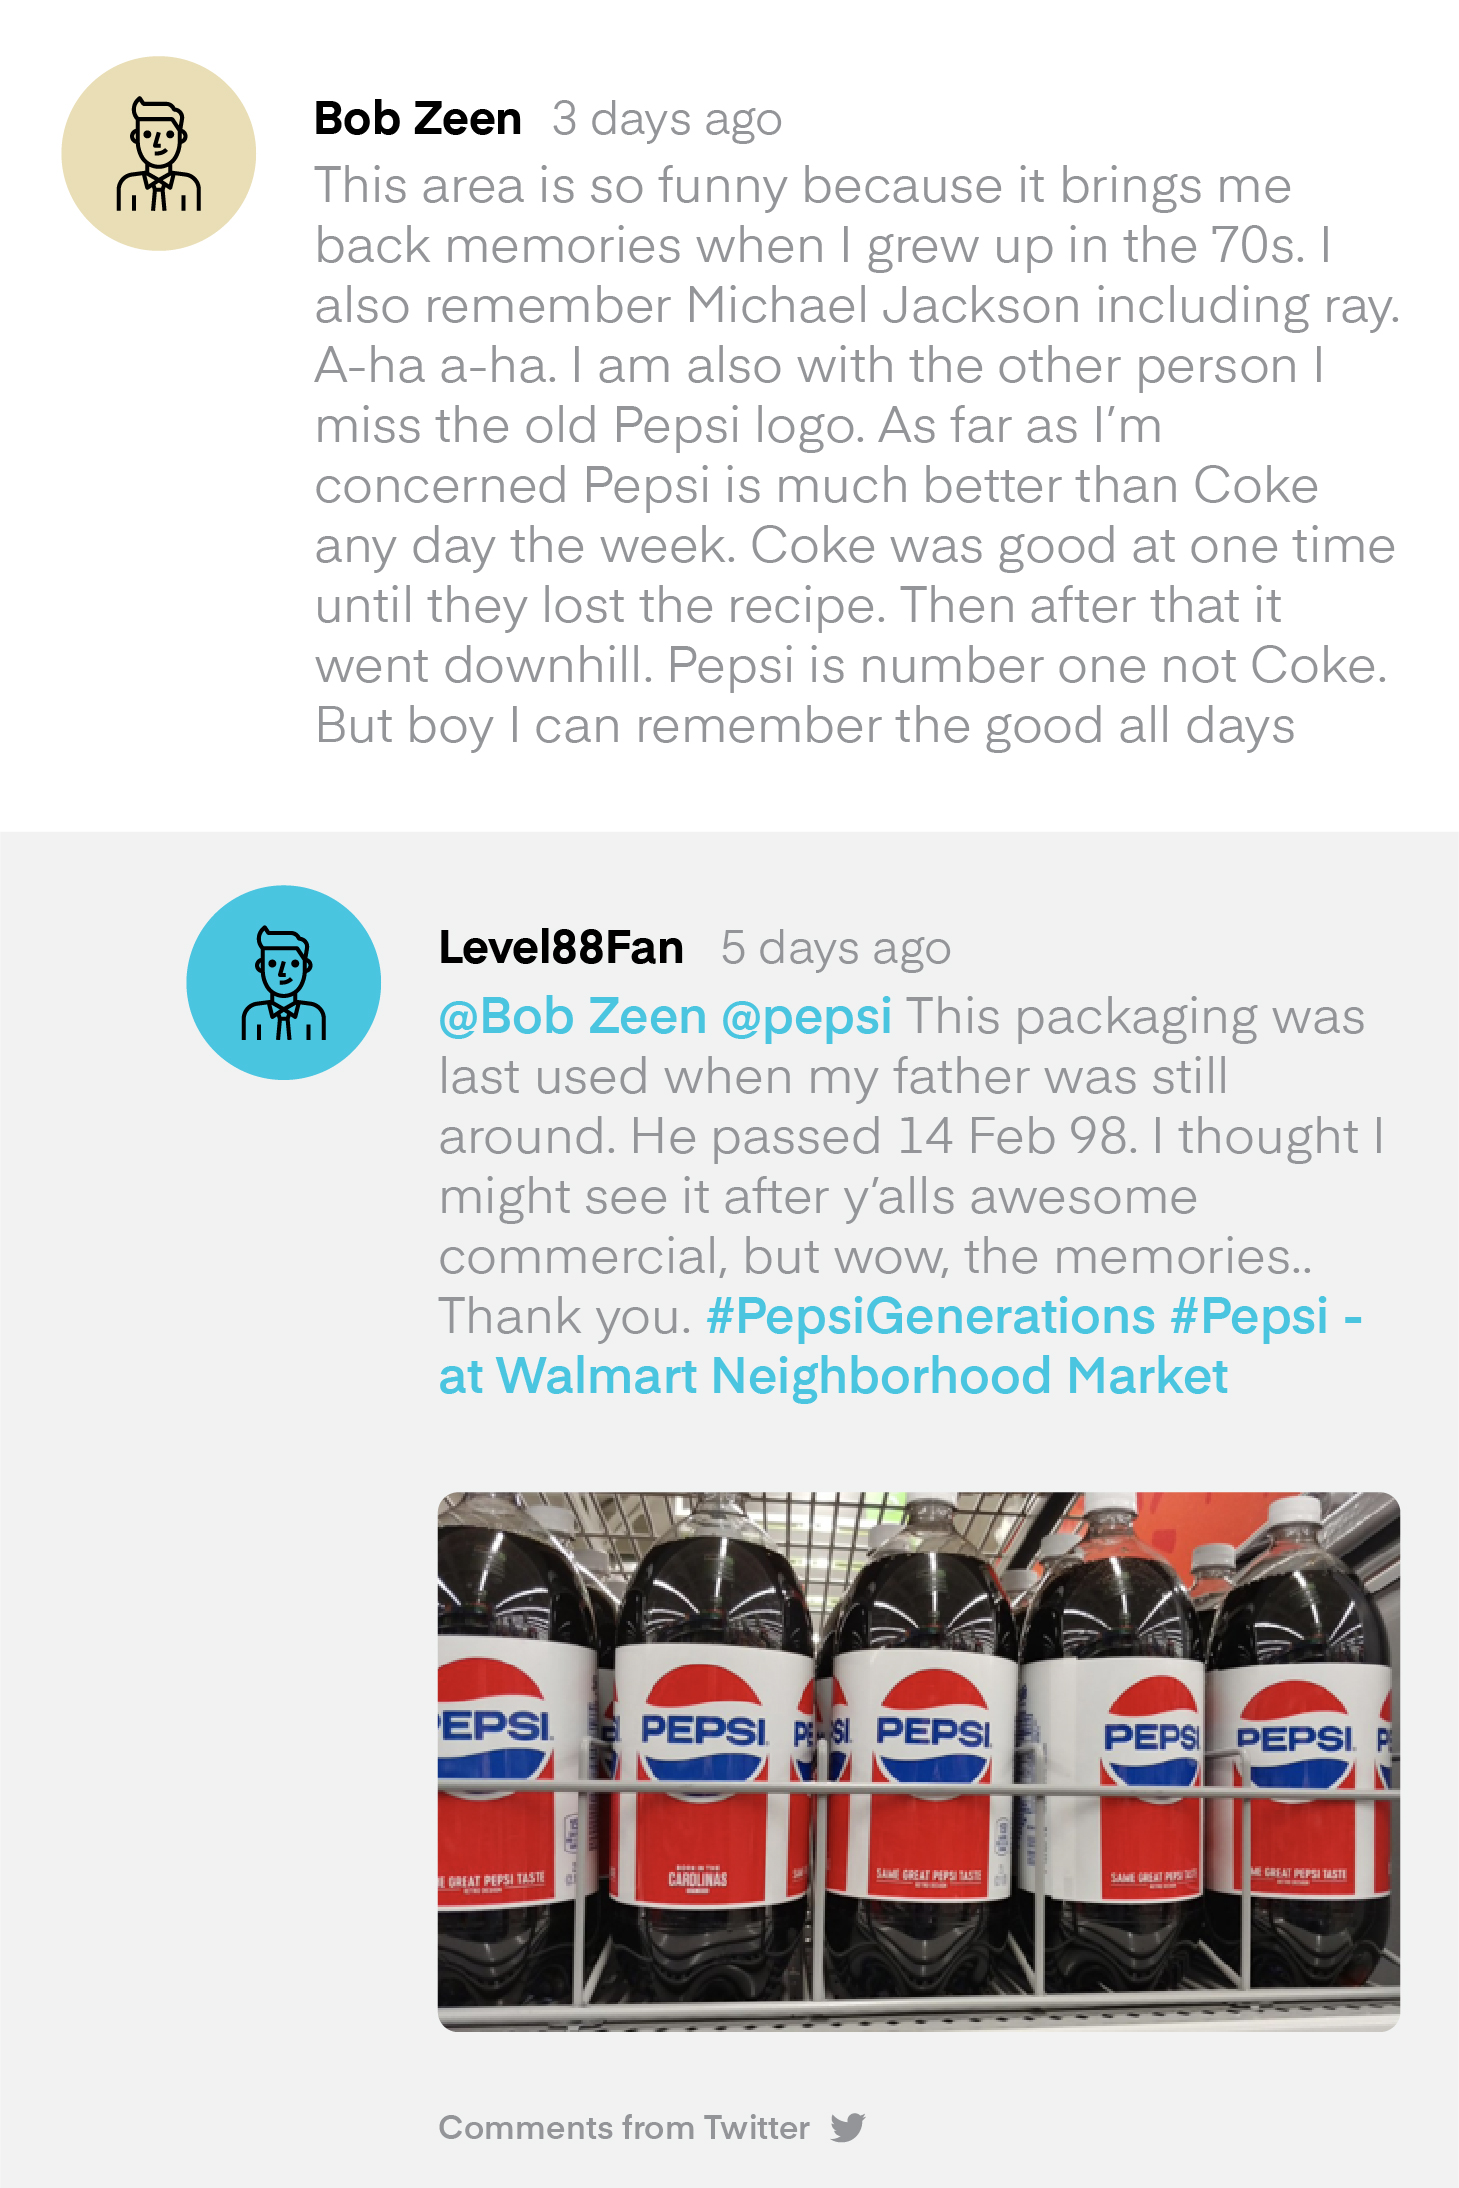 Social comments on a Pepsi video